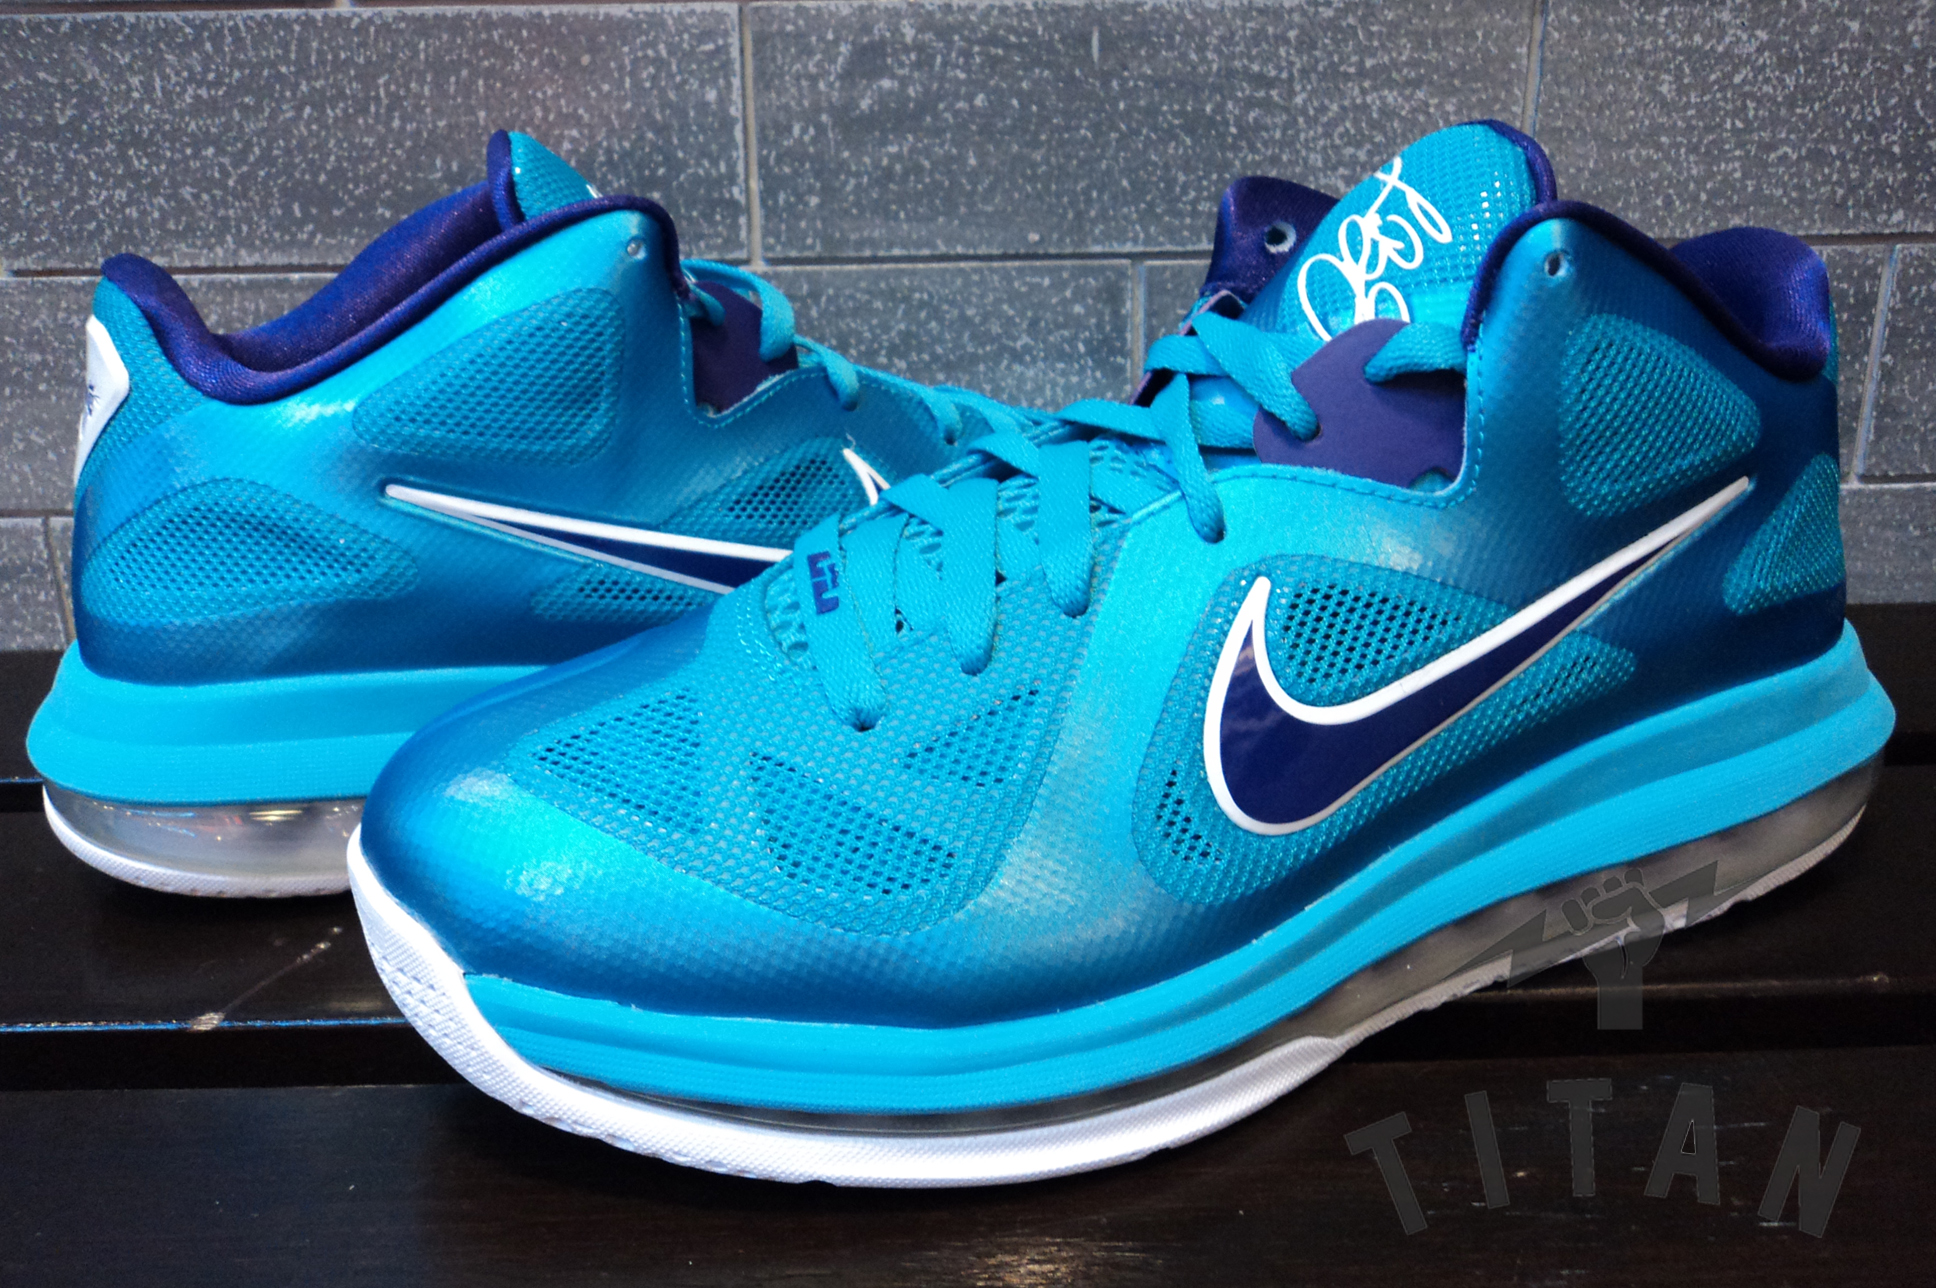 Nike LeBron 9 Low 'Summit Lake Hornets' - Another Look